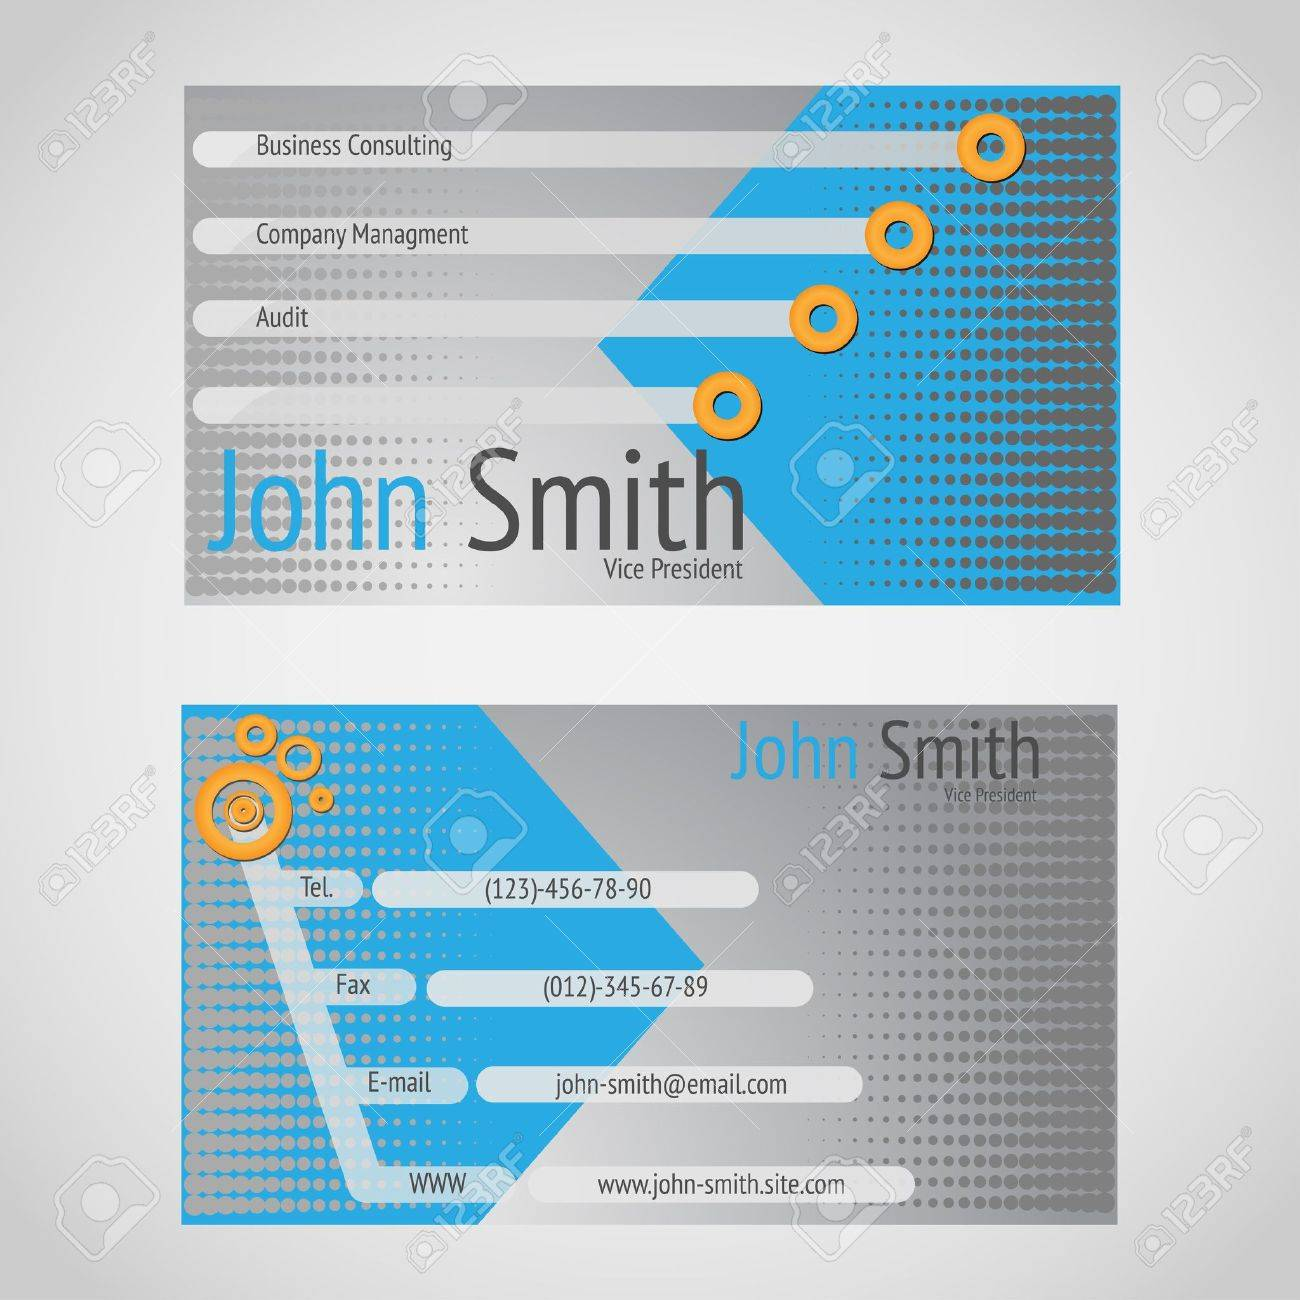 Standart 90 X 50 Mm Business Card With Cyen And Gray Colors ...